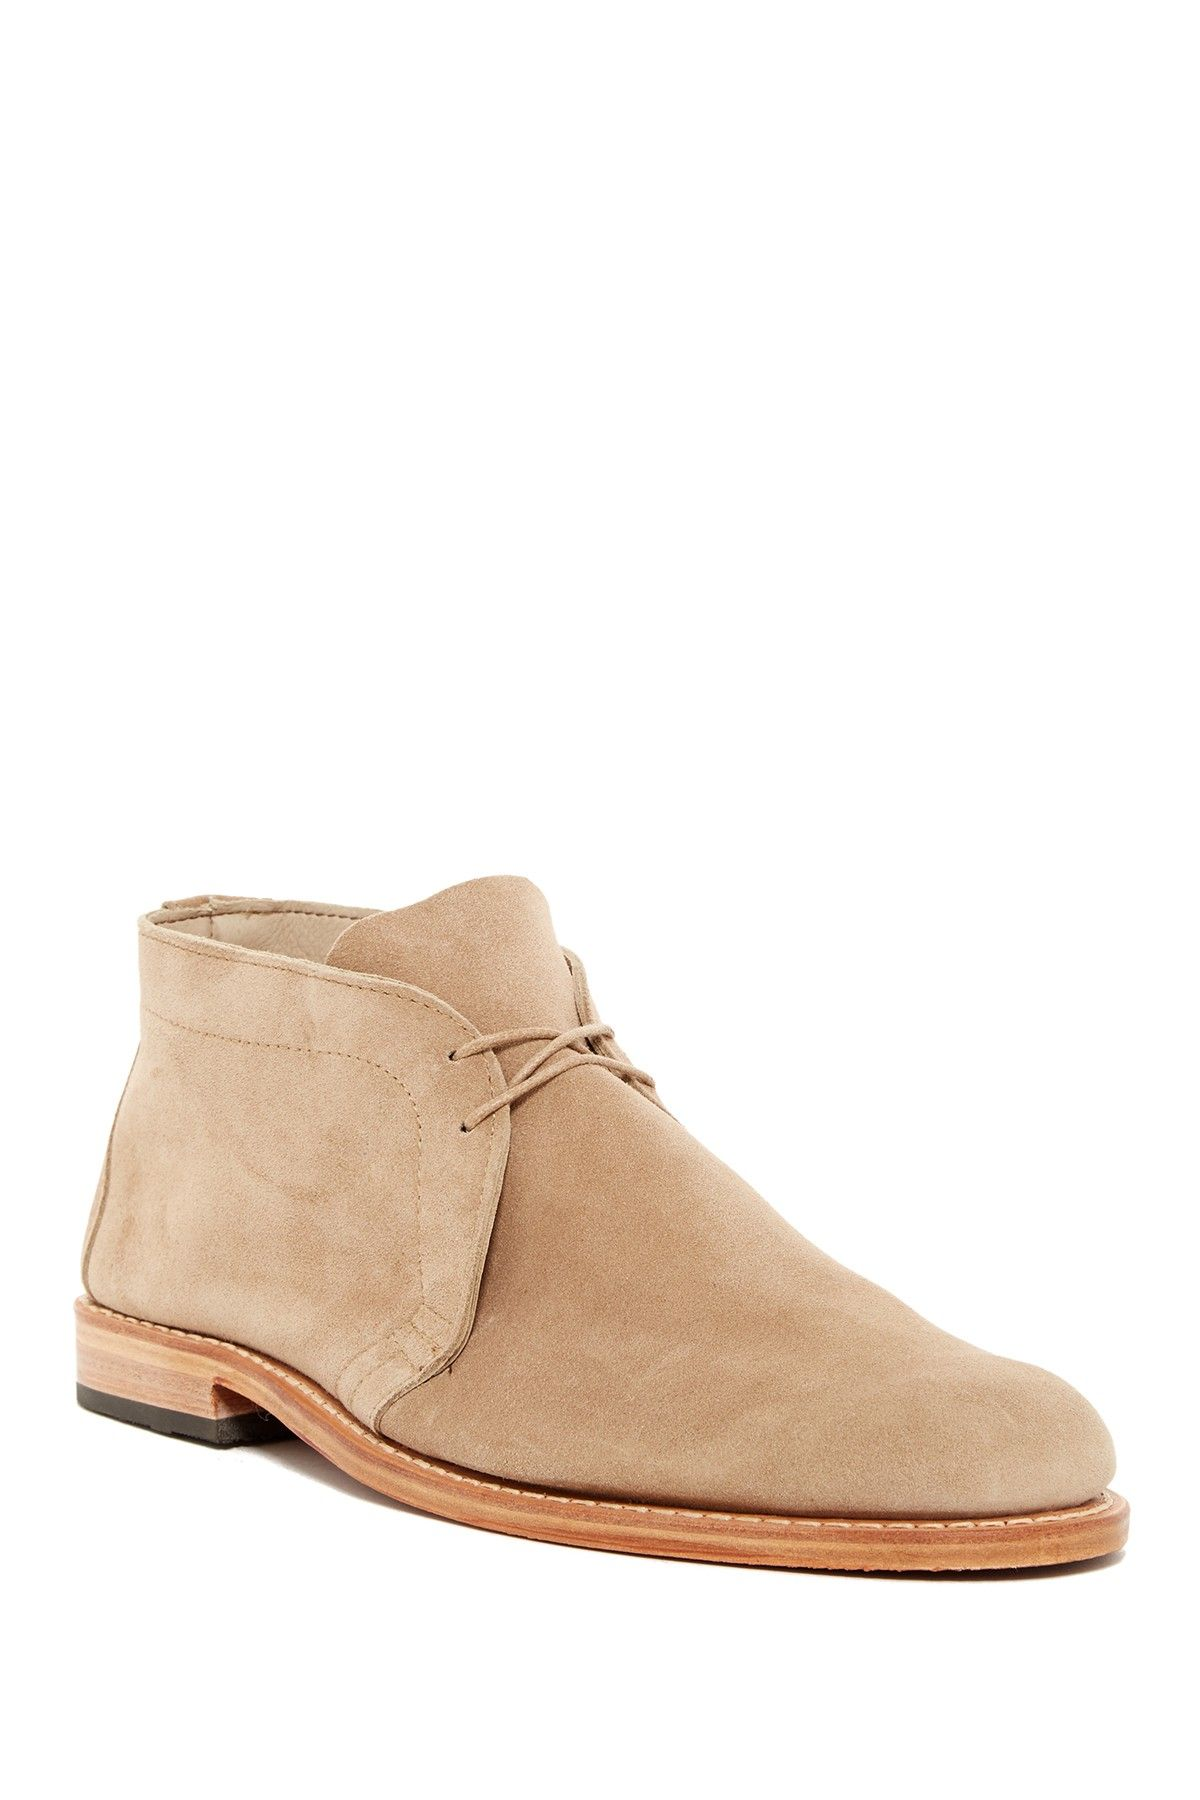 mojave 2 0 chukka boot extra wide width available chukka boot